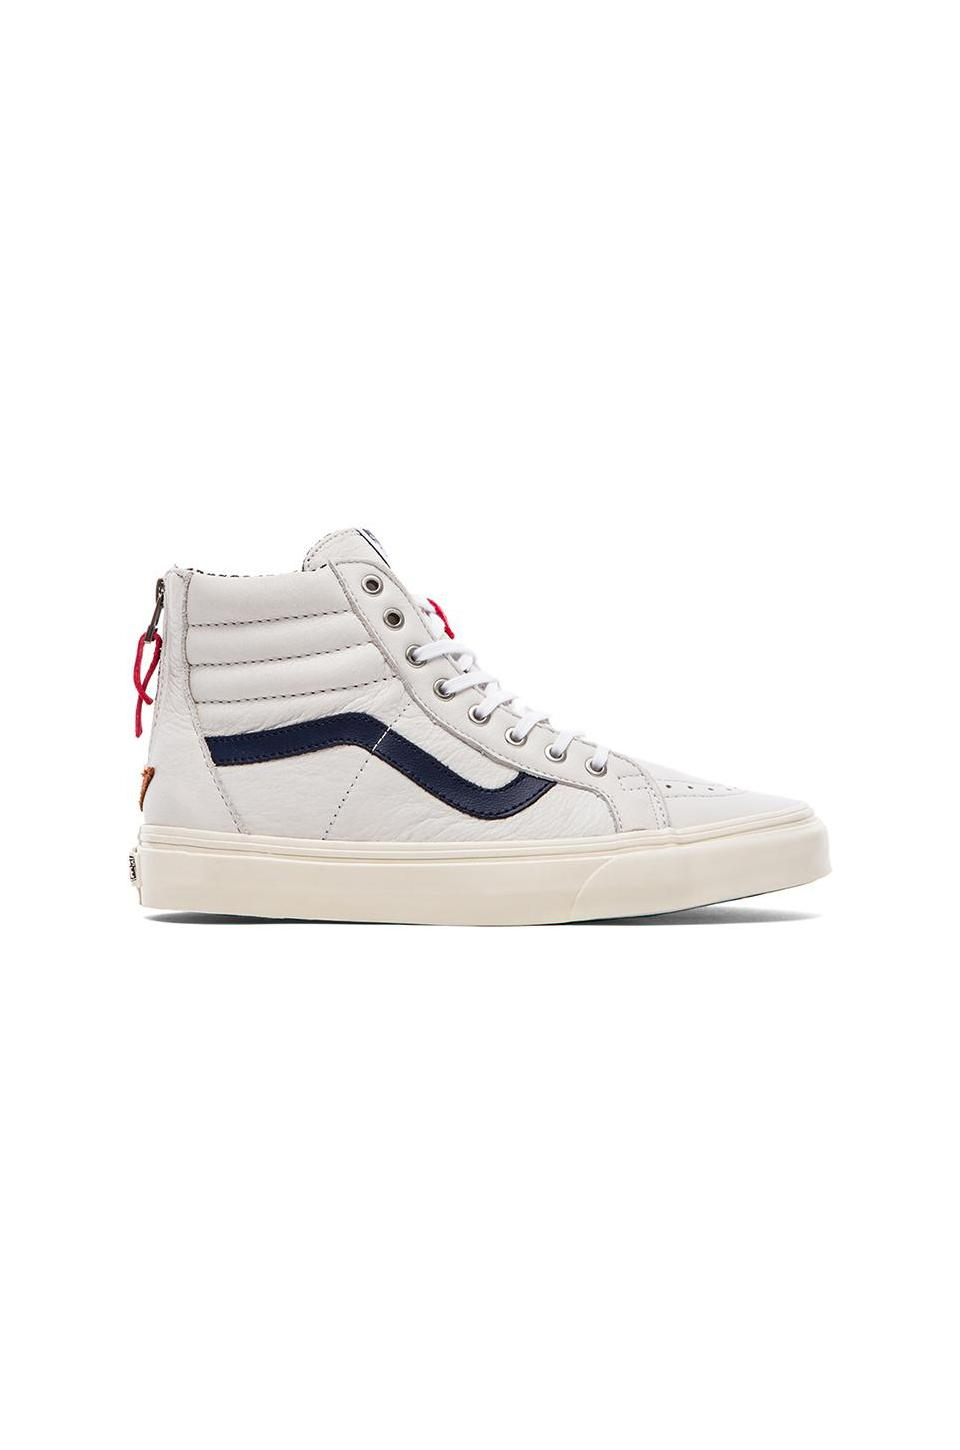 Vans California Sk8-Hi CA Zip in True White